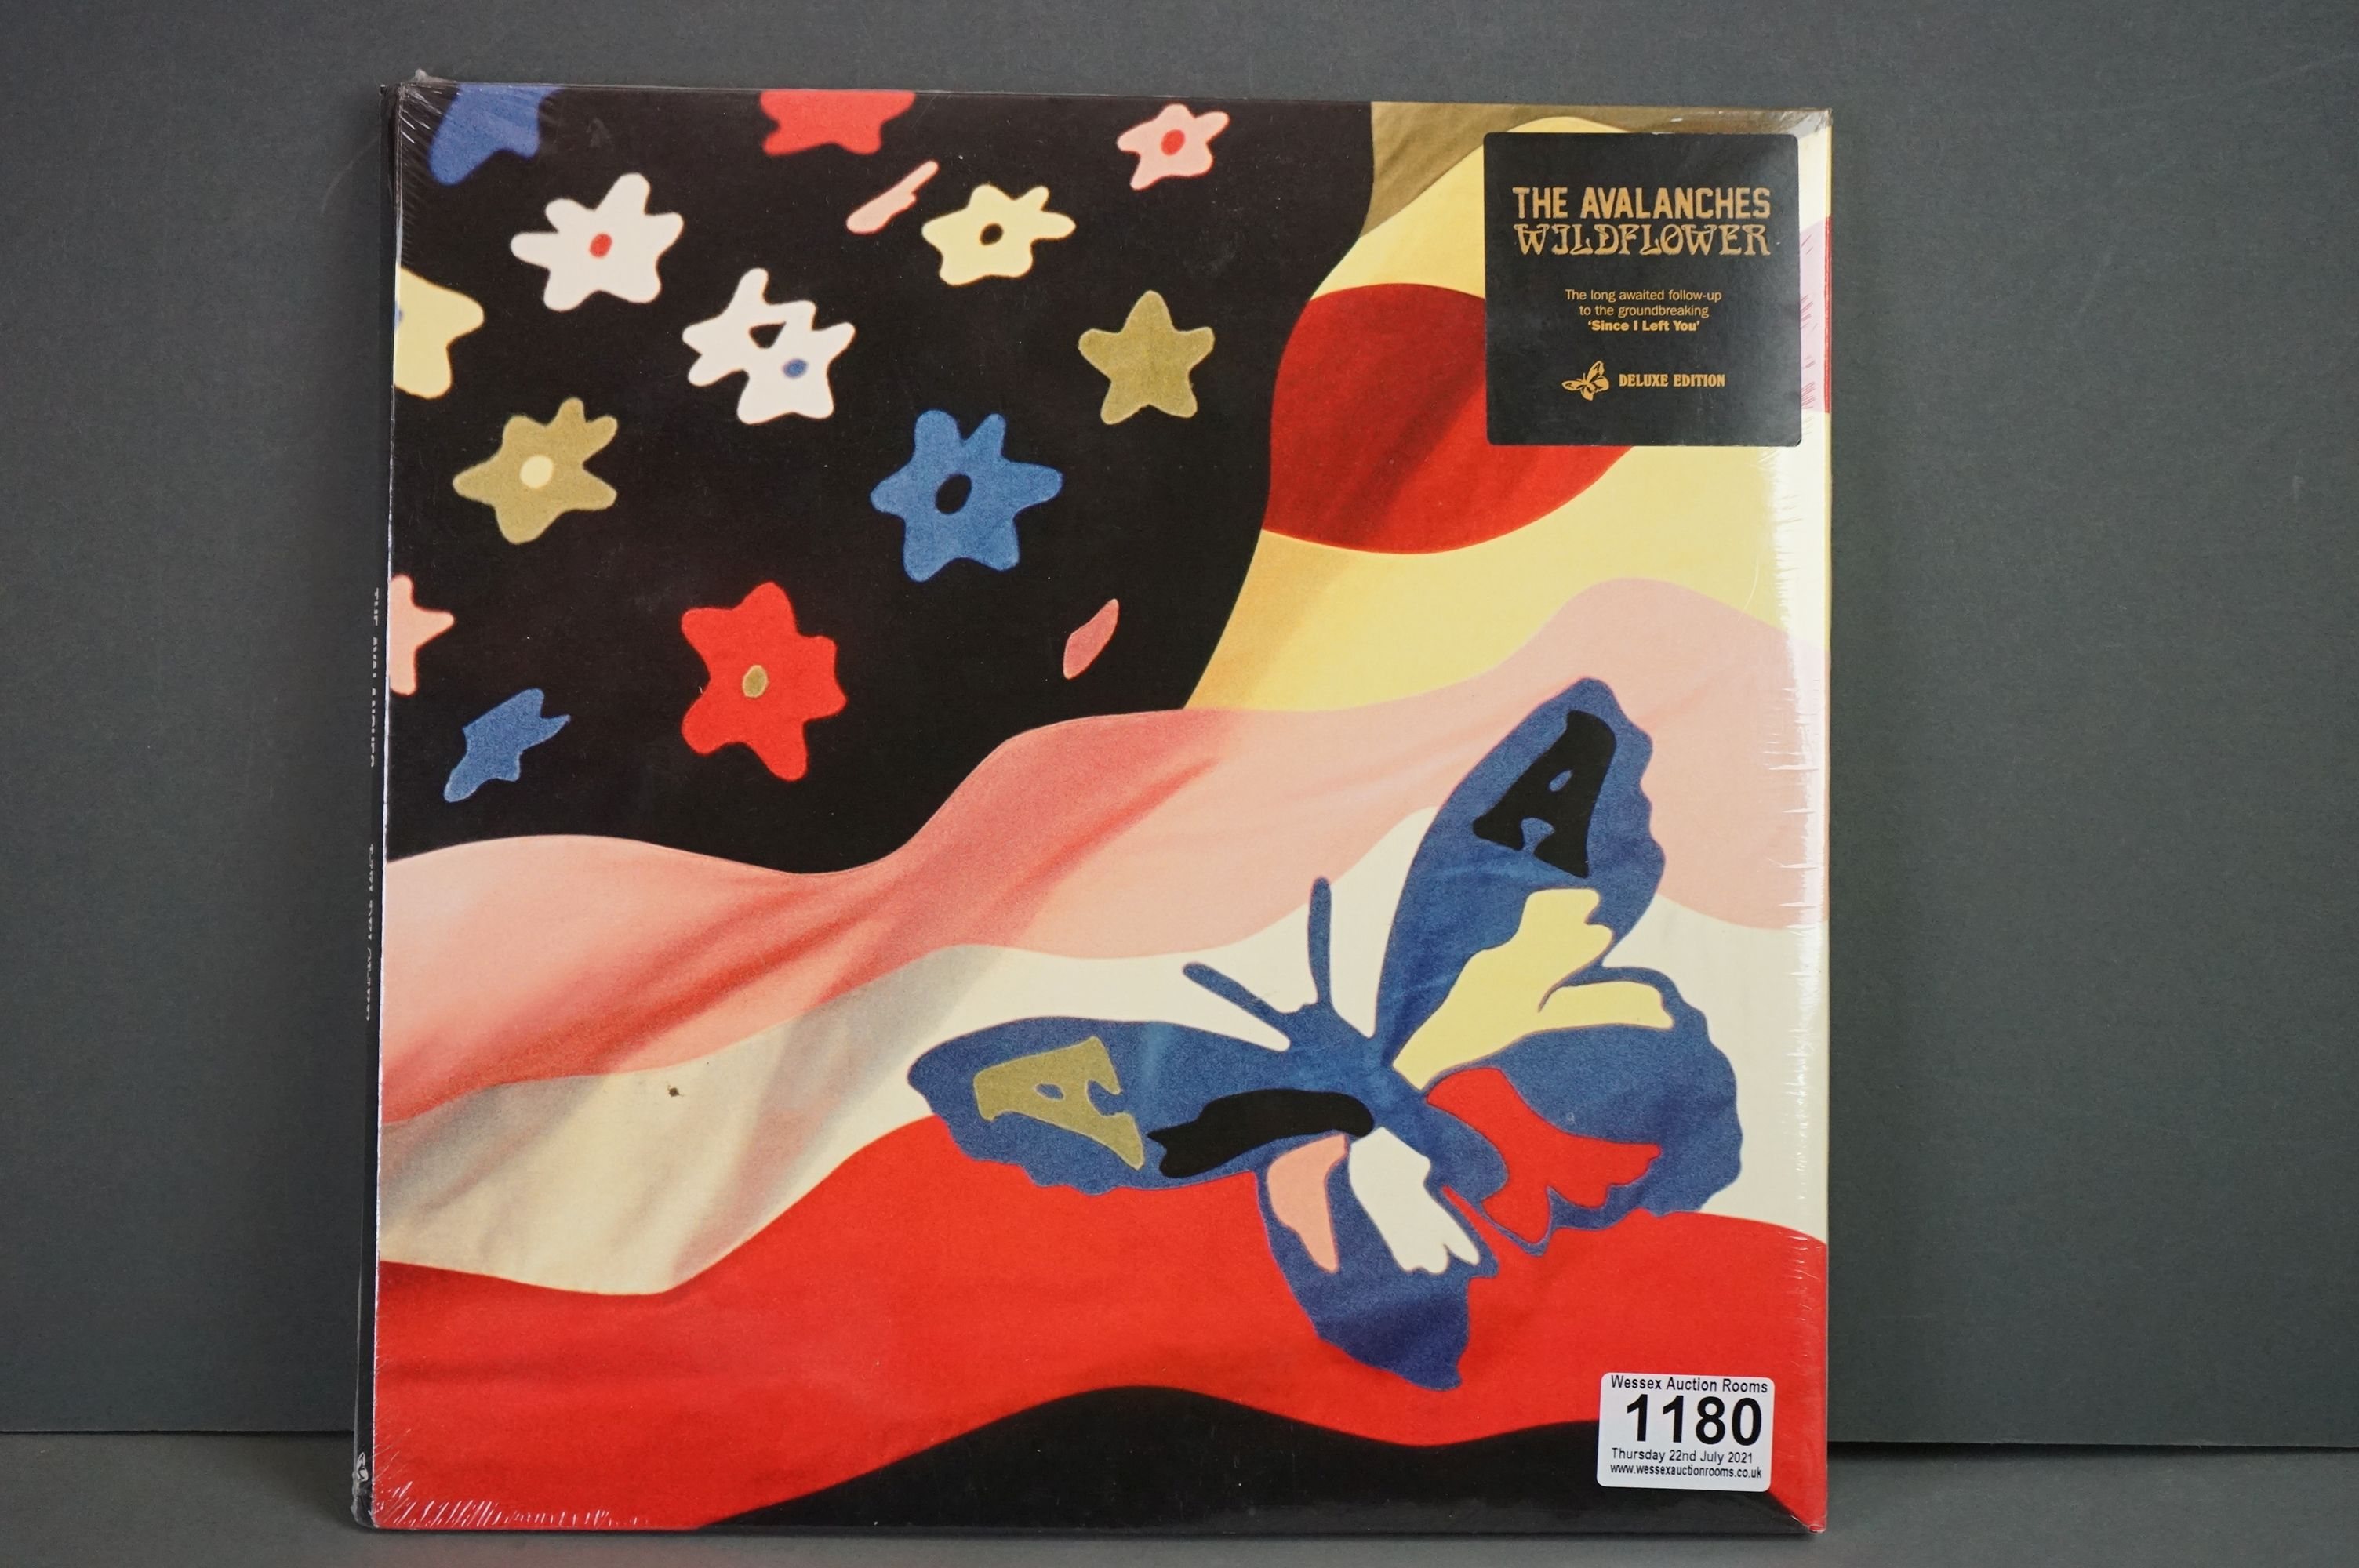 Vinyl - The Avalanches - Wildflower - Deluxe edition Vinyl LP (XL Recordings 634904075507), New &